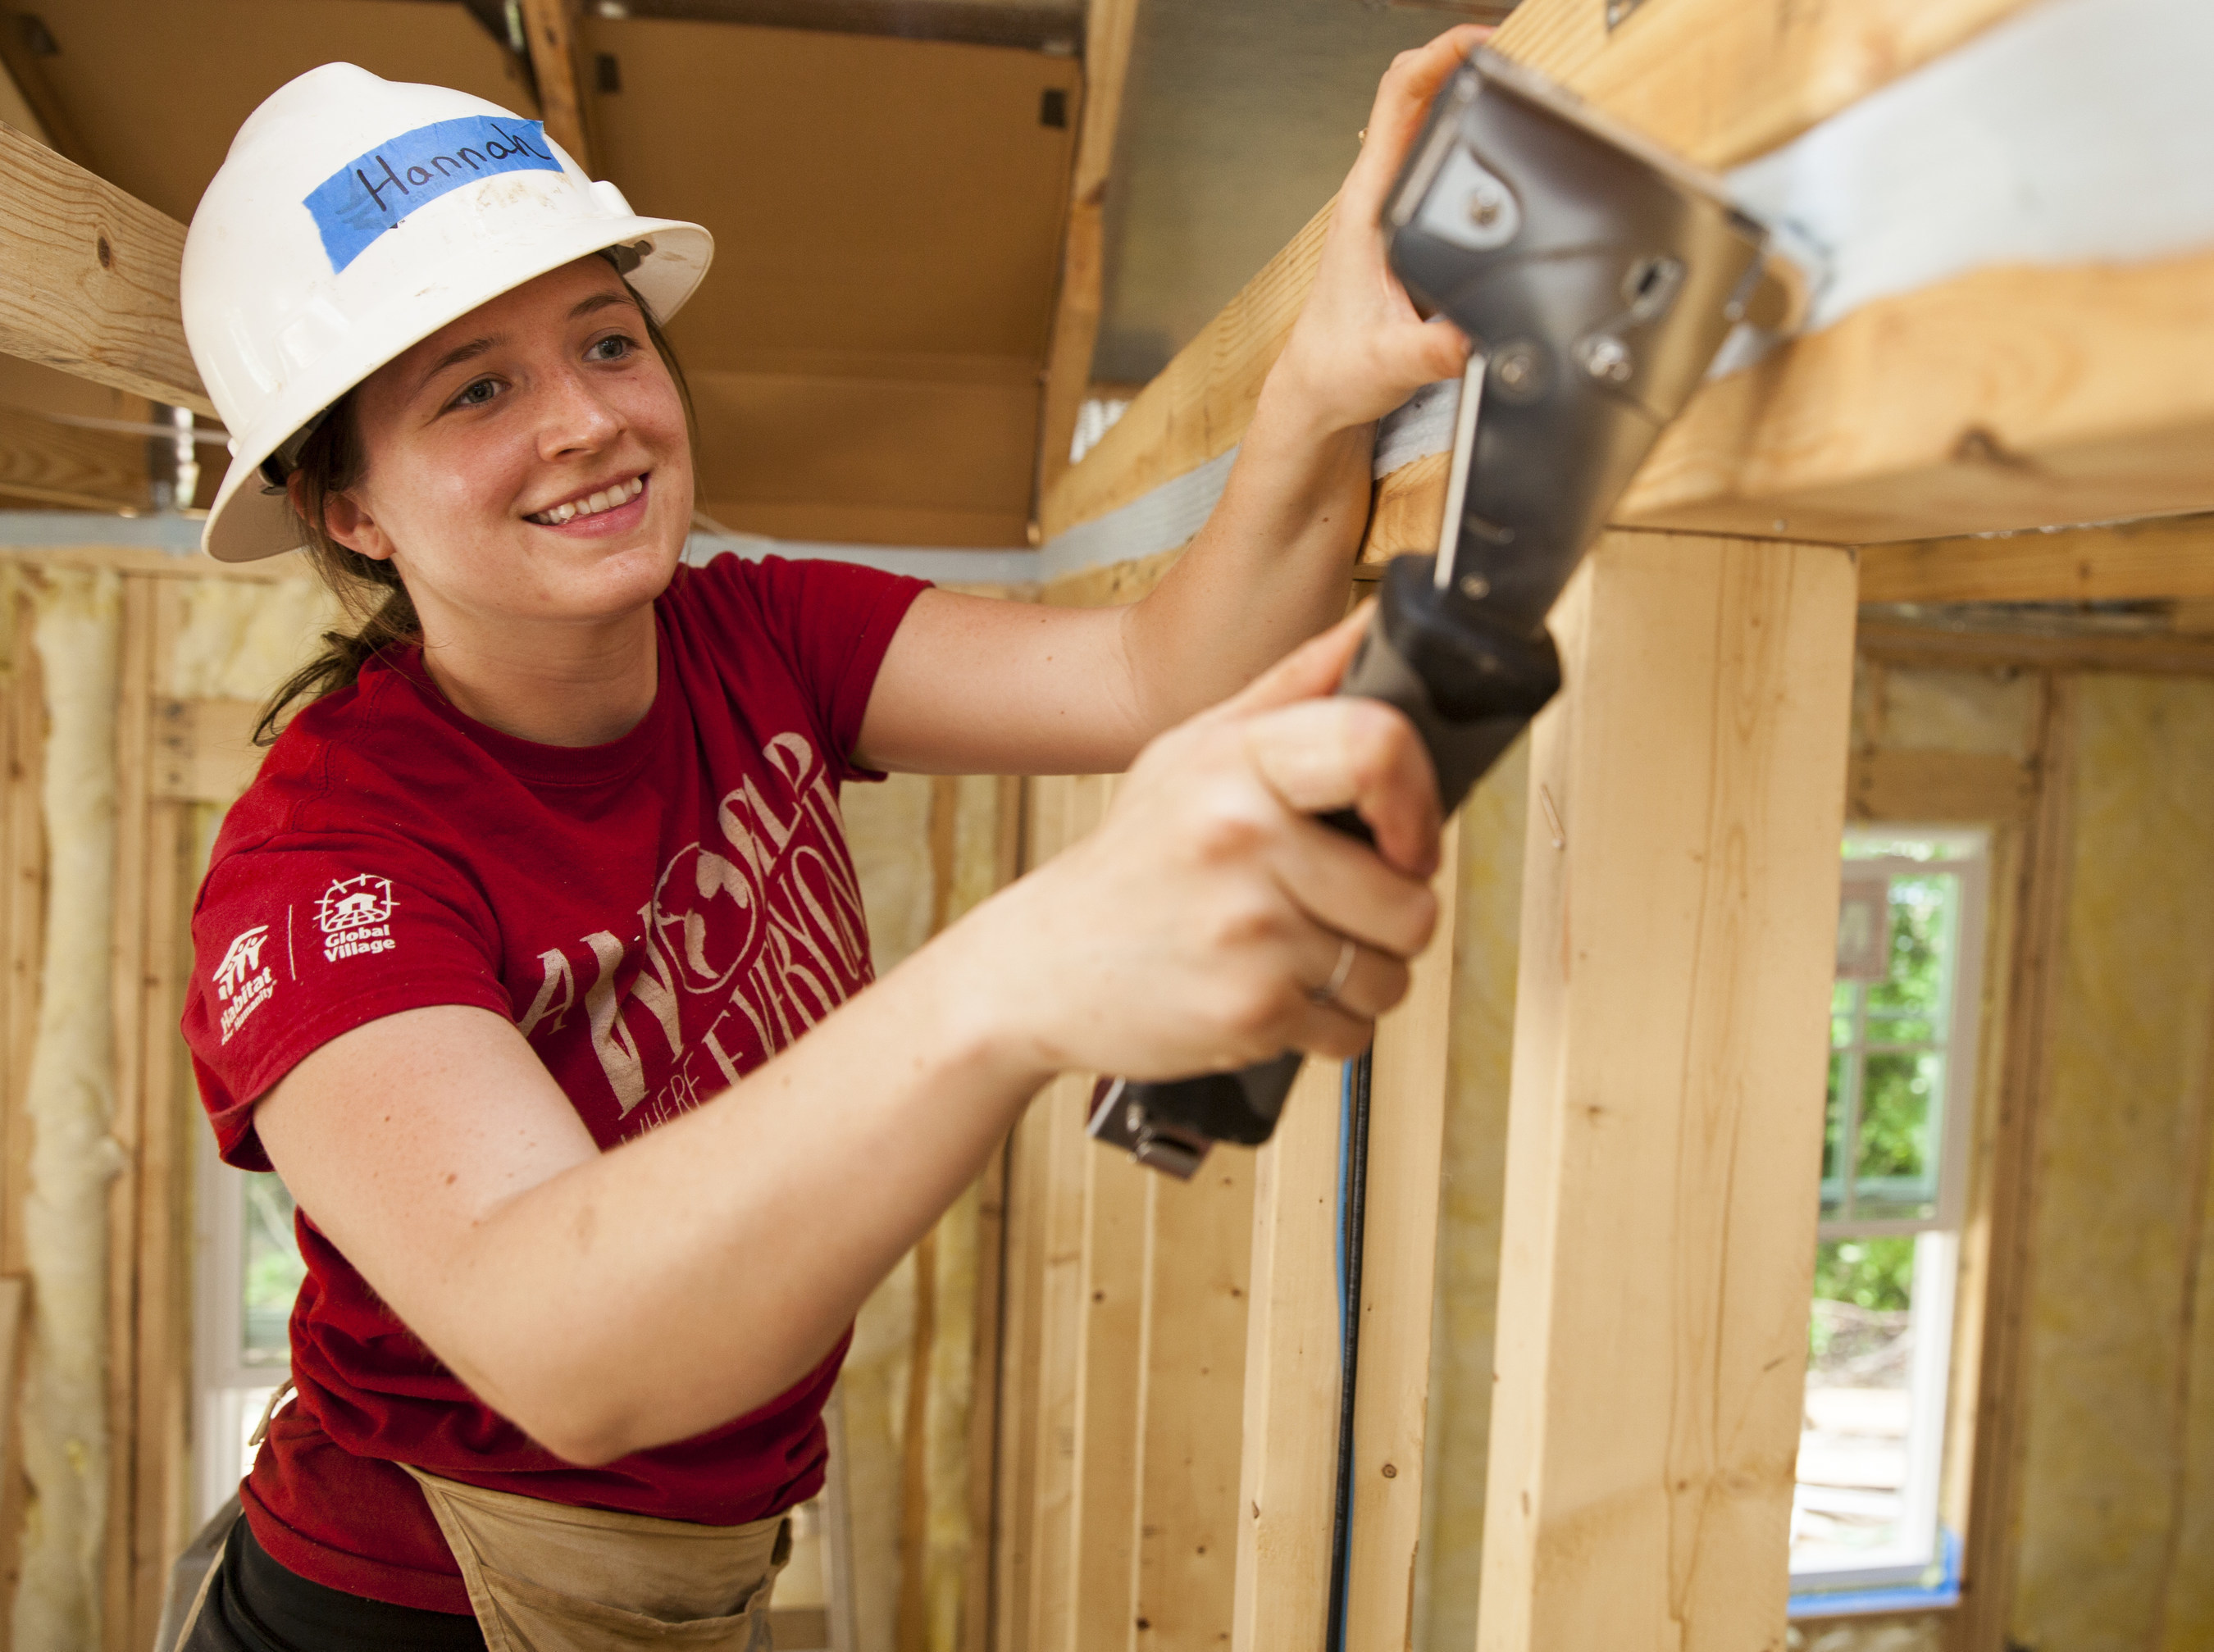 More than 120 AmeriCorps members from across the United States gathered in Raleigh last year to participate in Habitat's annual AmeriCorps Build-a-Thon.